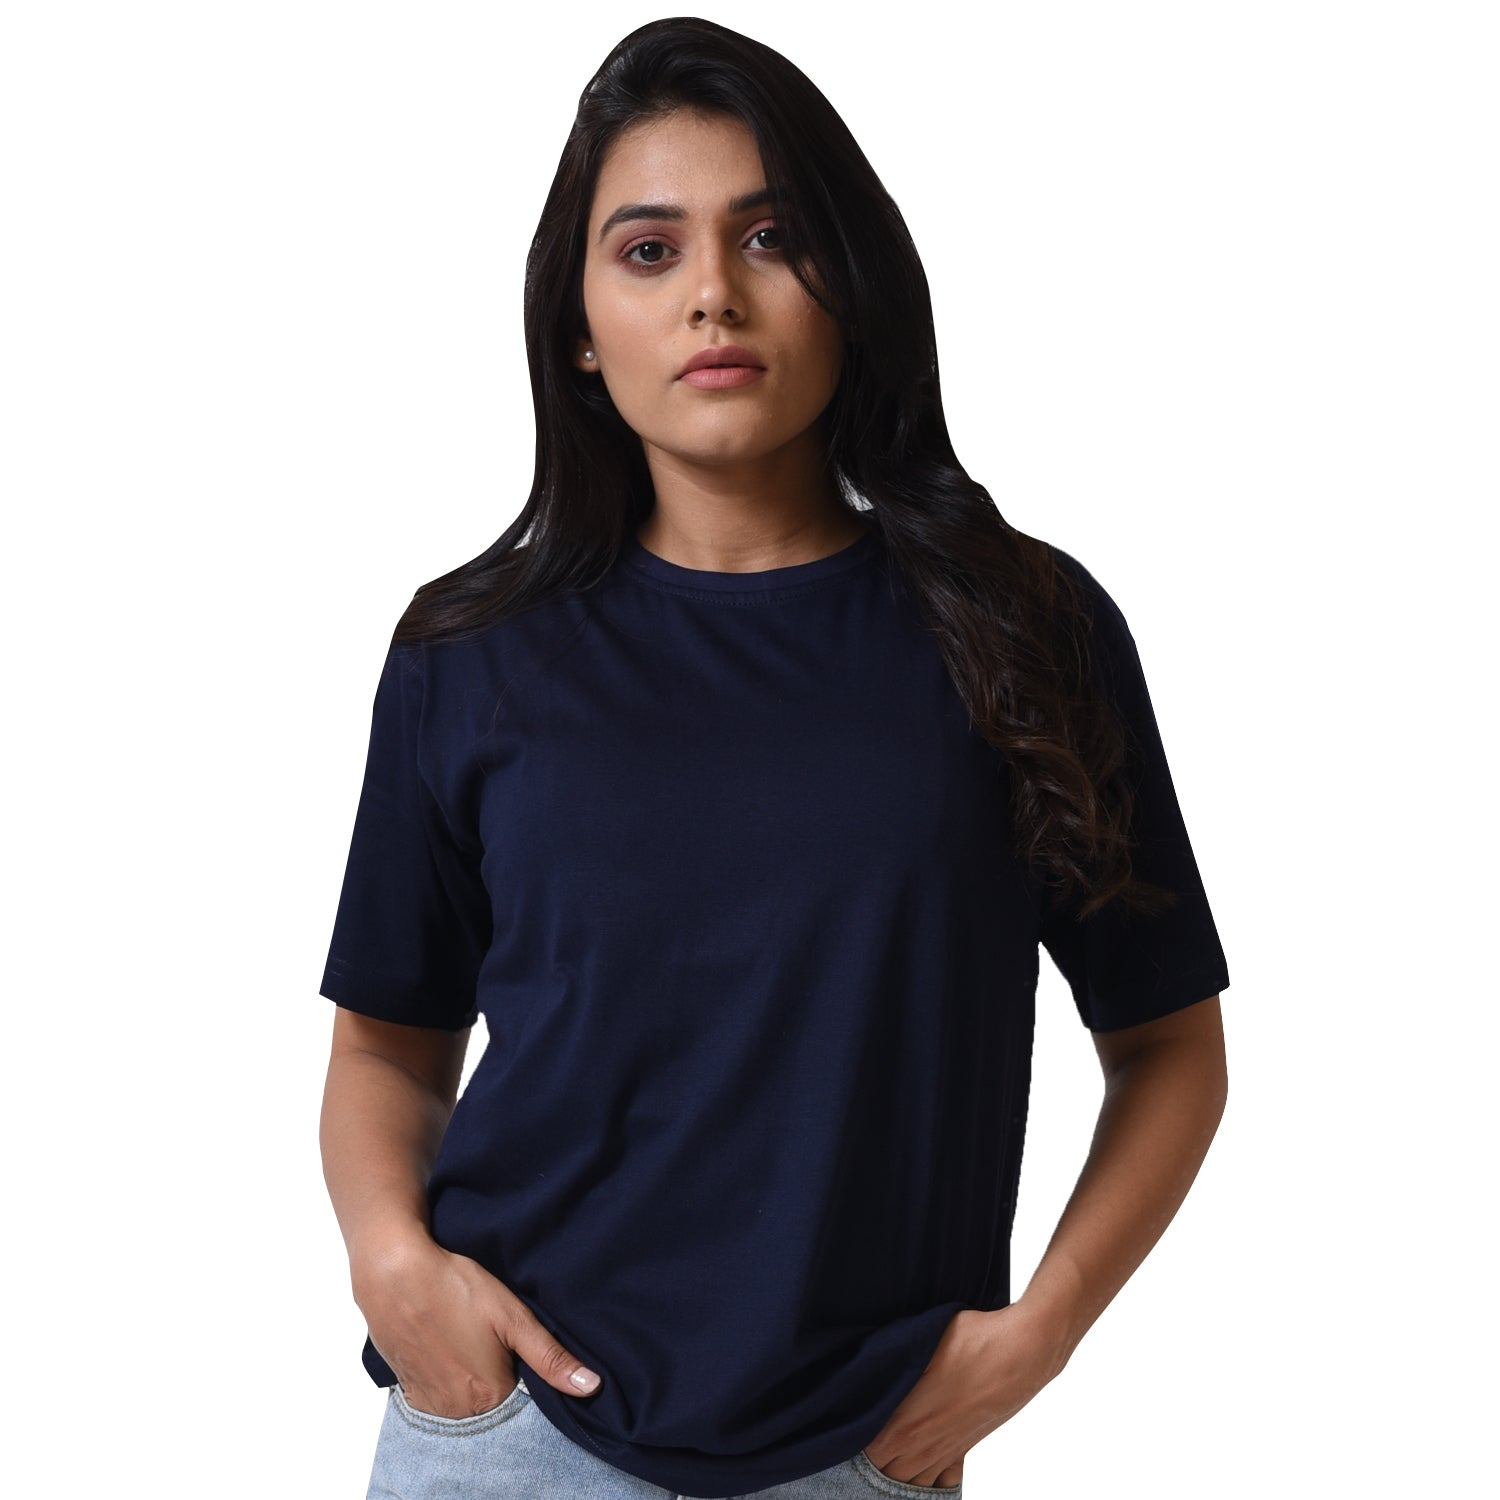 BASIC COMBO WOMEN TSHIRT NAVY BLUE & MAROON